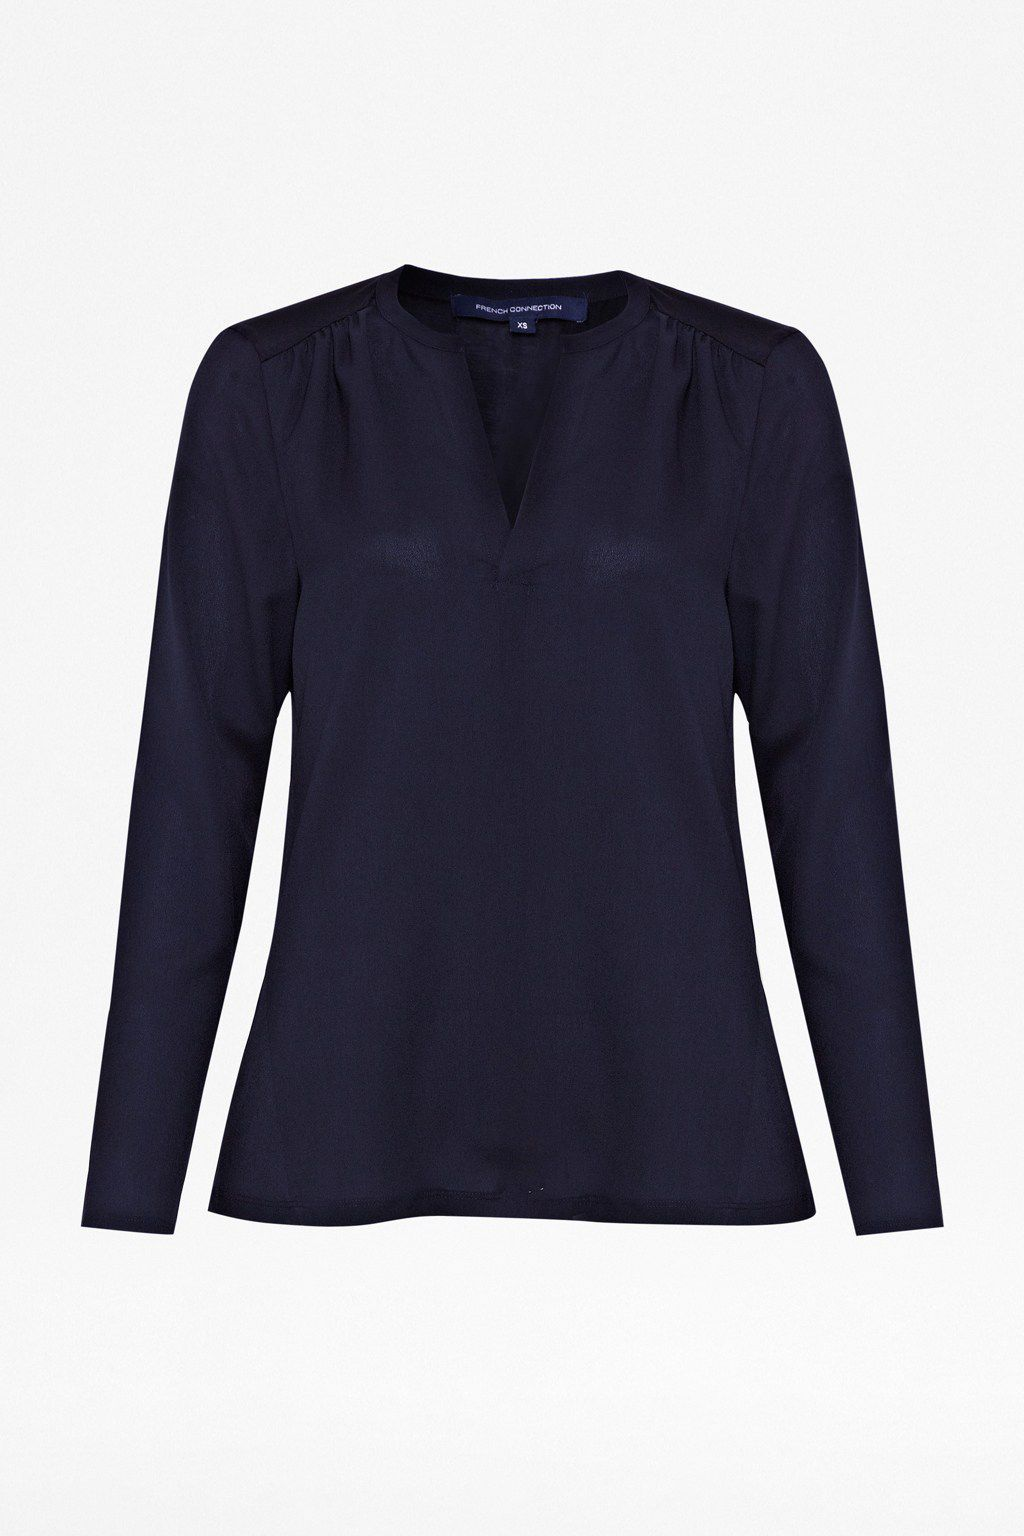 Classic Polly Plains Shirt, Utility Blue - pattern: plain; style: shirt; predominant colour: navy; occasions: casual, work, creative work; length: standard; neckline: collarstand & mandarin with v-neck; fibres: polyester/polyamide - mix; fit: straight cut; sleeve length: long sleeve; sleeve style: standard; pattern type: fabric; texture group: other - light to midweight; season: s/s 2014